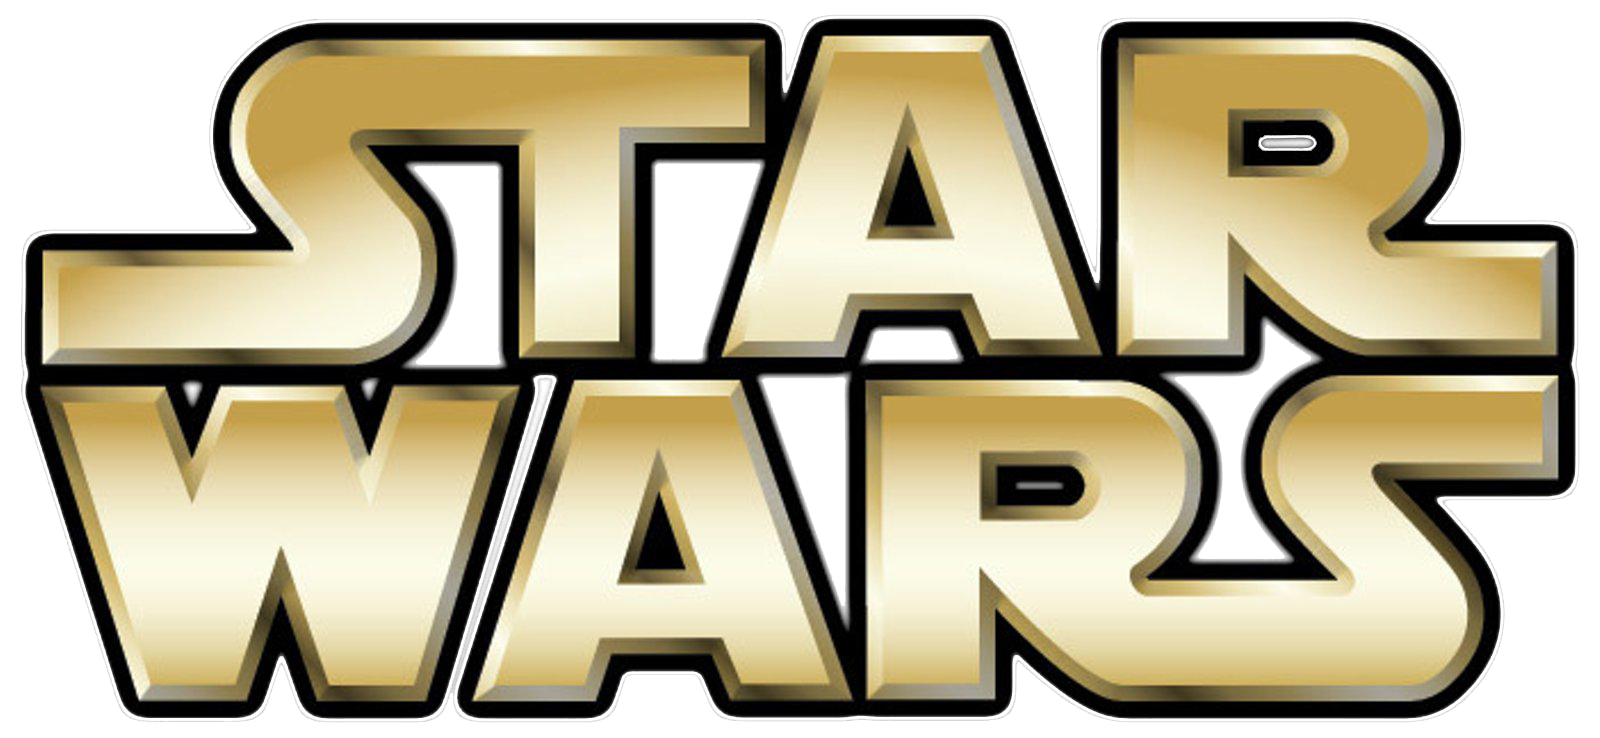 Star Wars Logo Picture Png